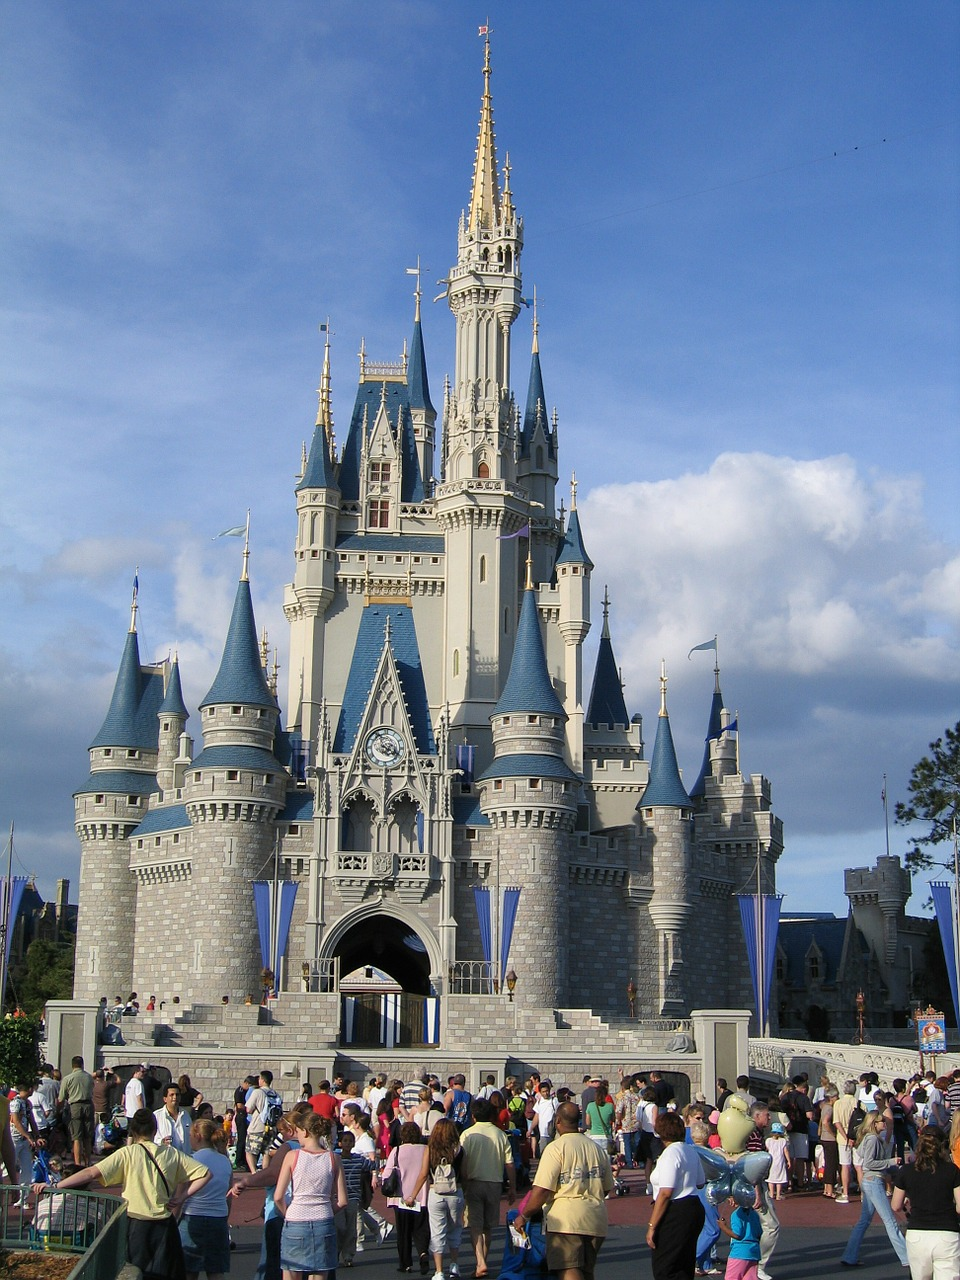 Visiting Cinderella Castle in the Magic Kingdom is a cornerstone of any Walt Disney World vacation